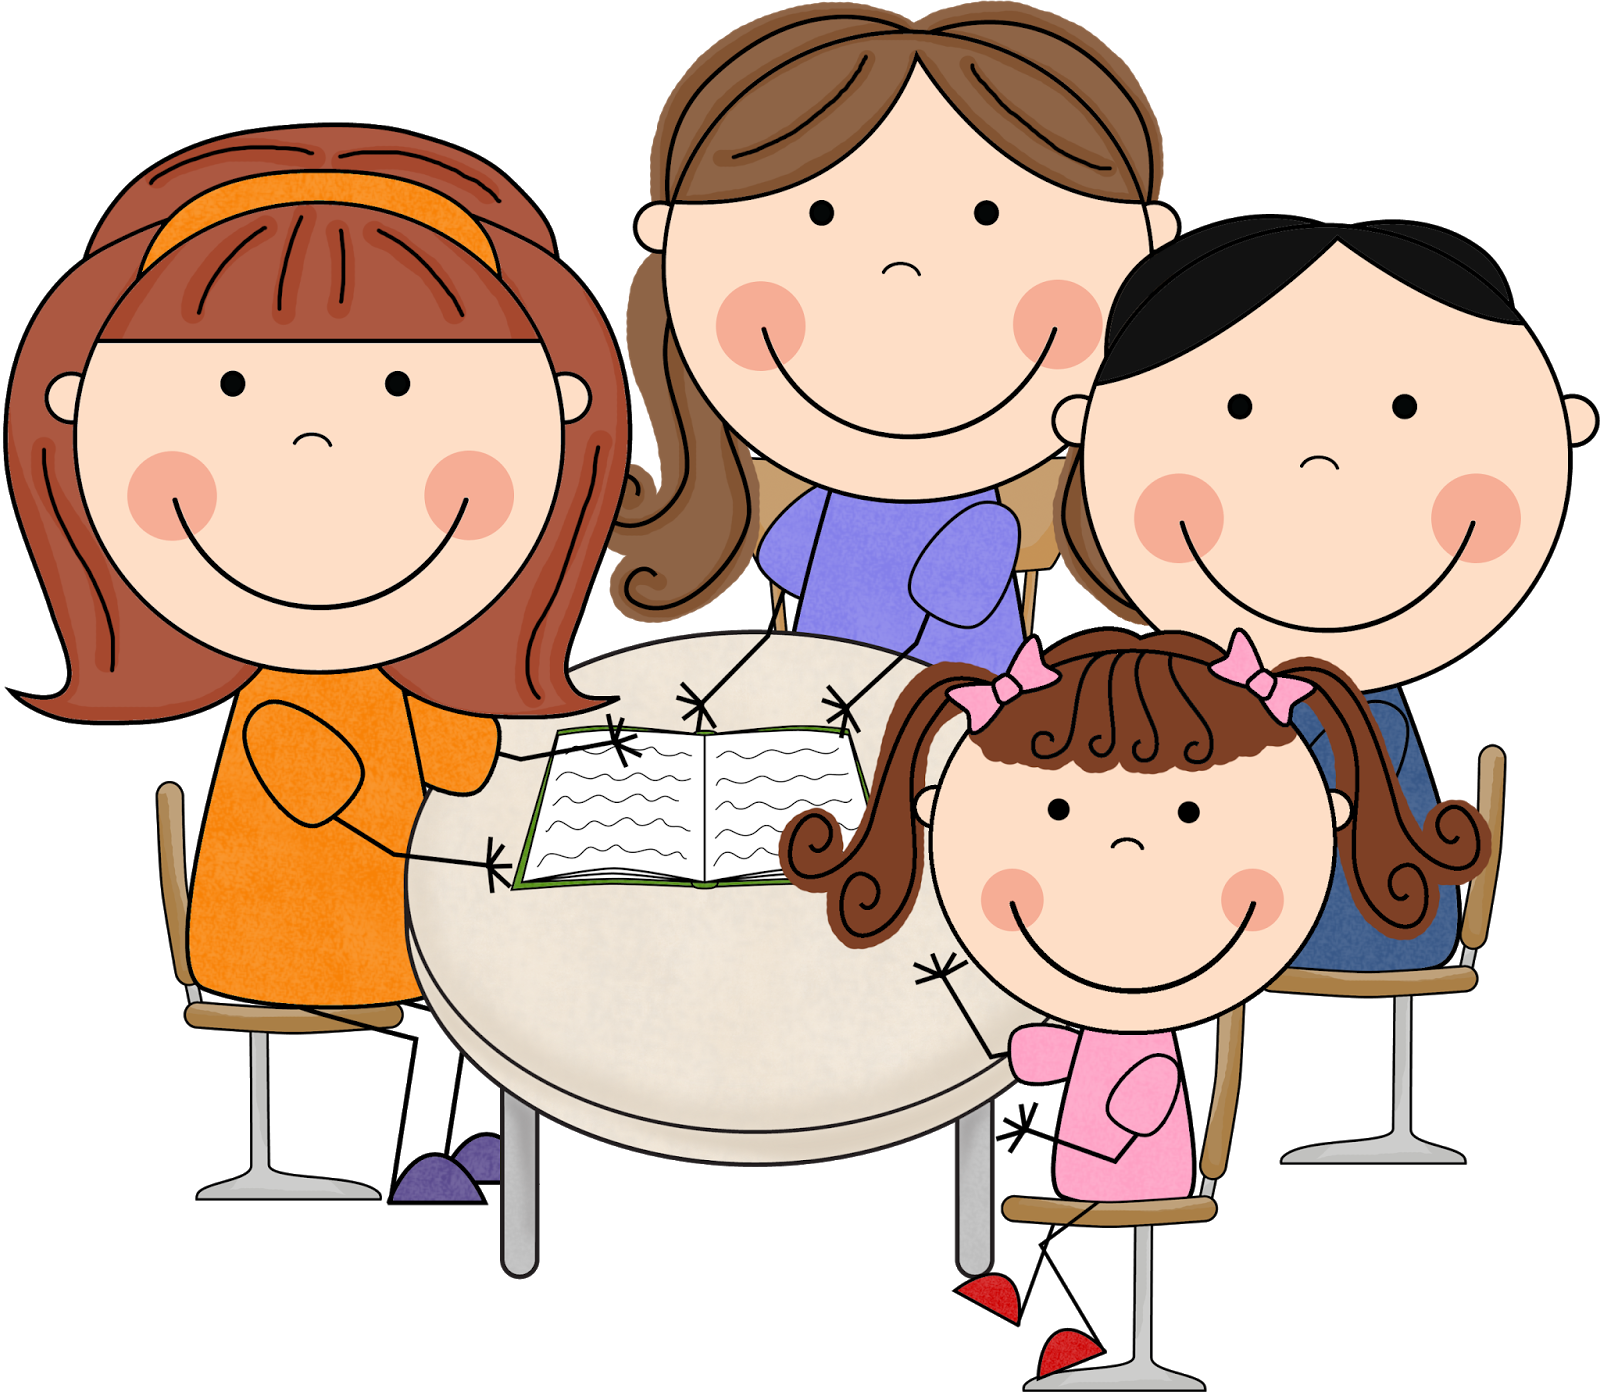 graphic free download Kids learning clipart. I chapter conclusion and